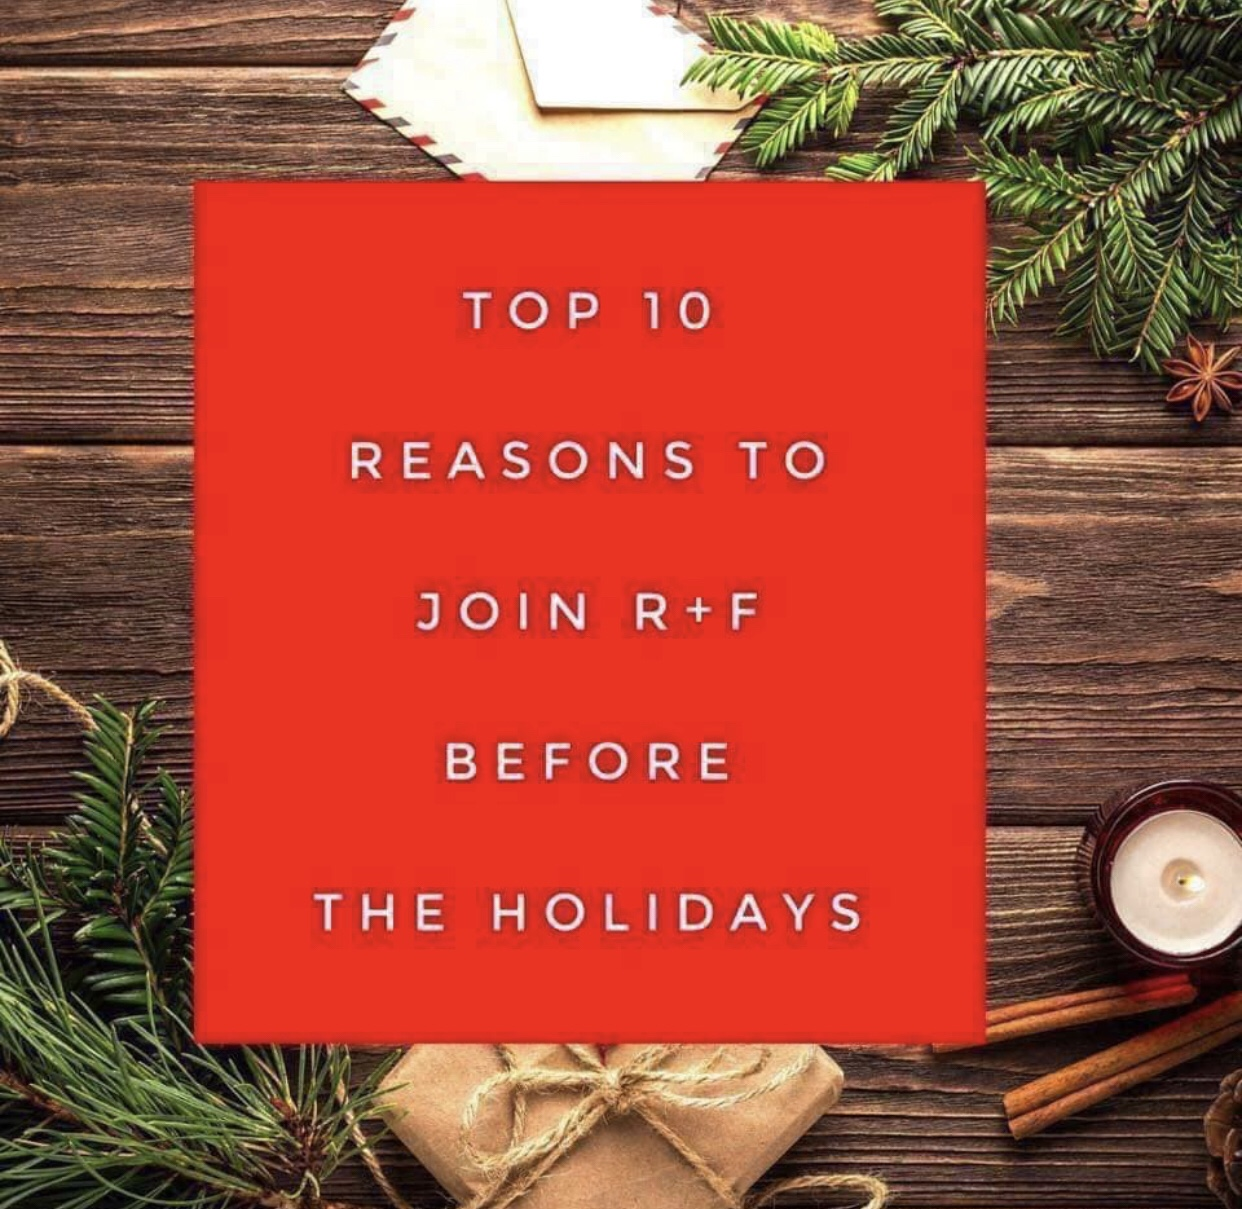 Rodan And Fields Christmas 2020 Top 10 Reasons To Join Rodan + Fields Before the Holidays